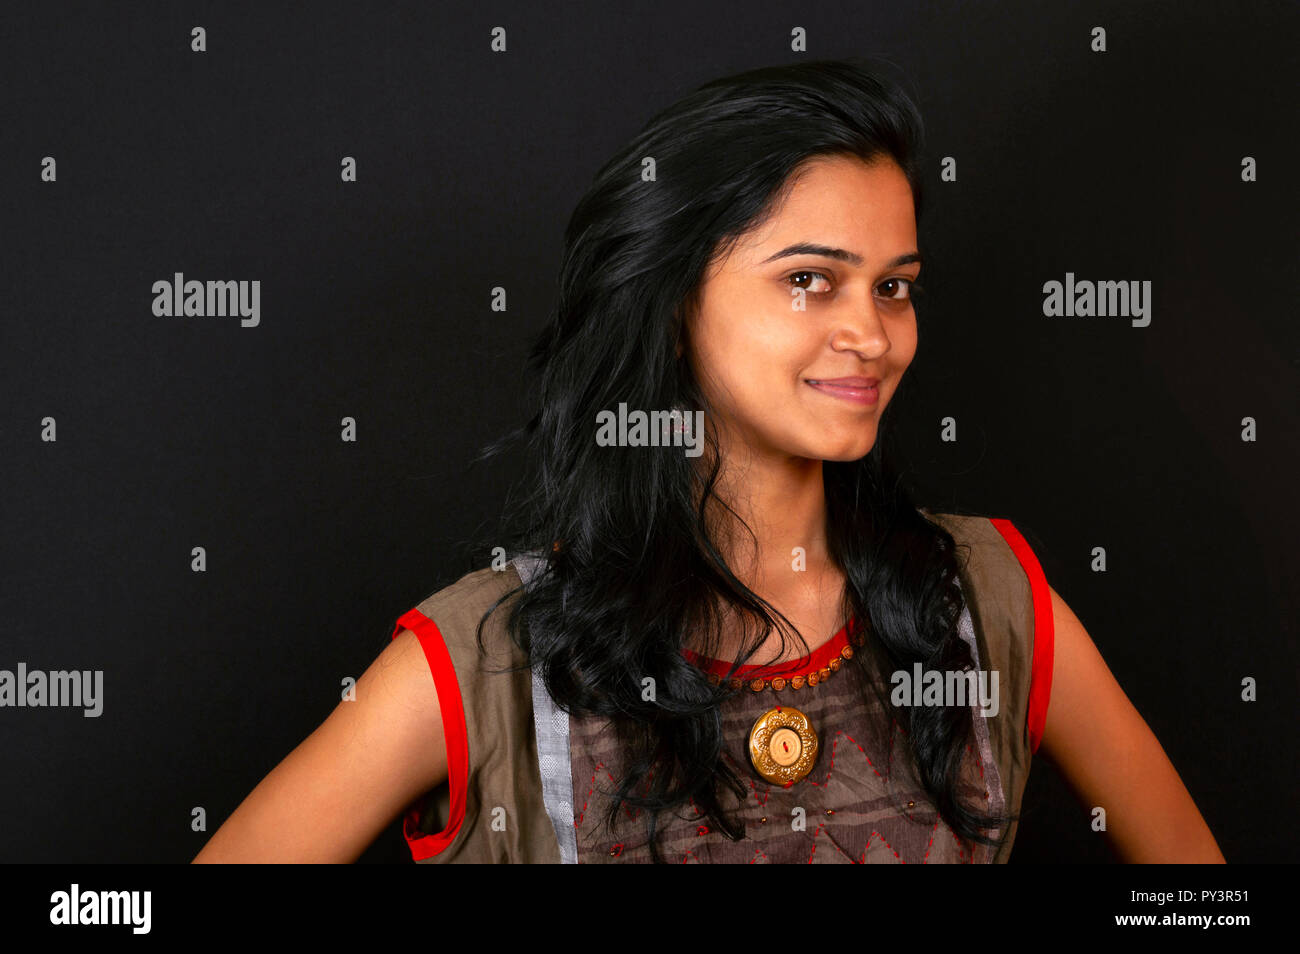 Happy young Indian woman smiling against black background, Pune, India. - Stock Image